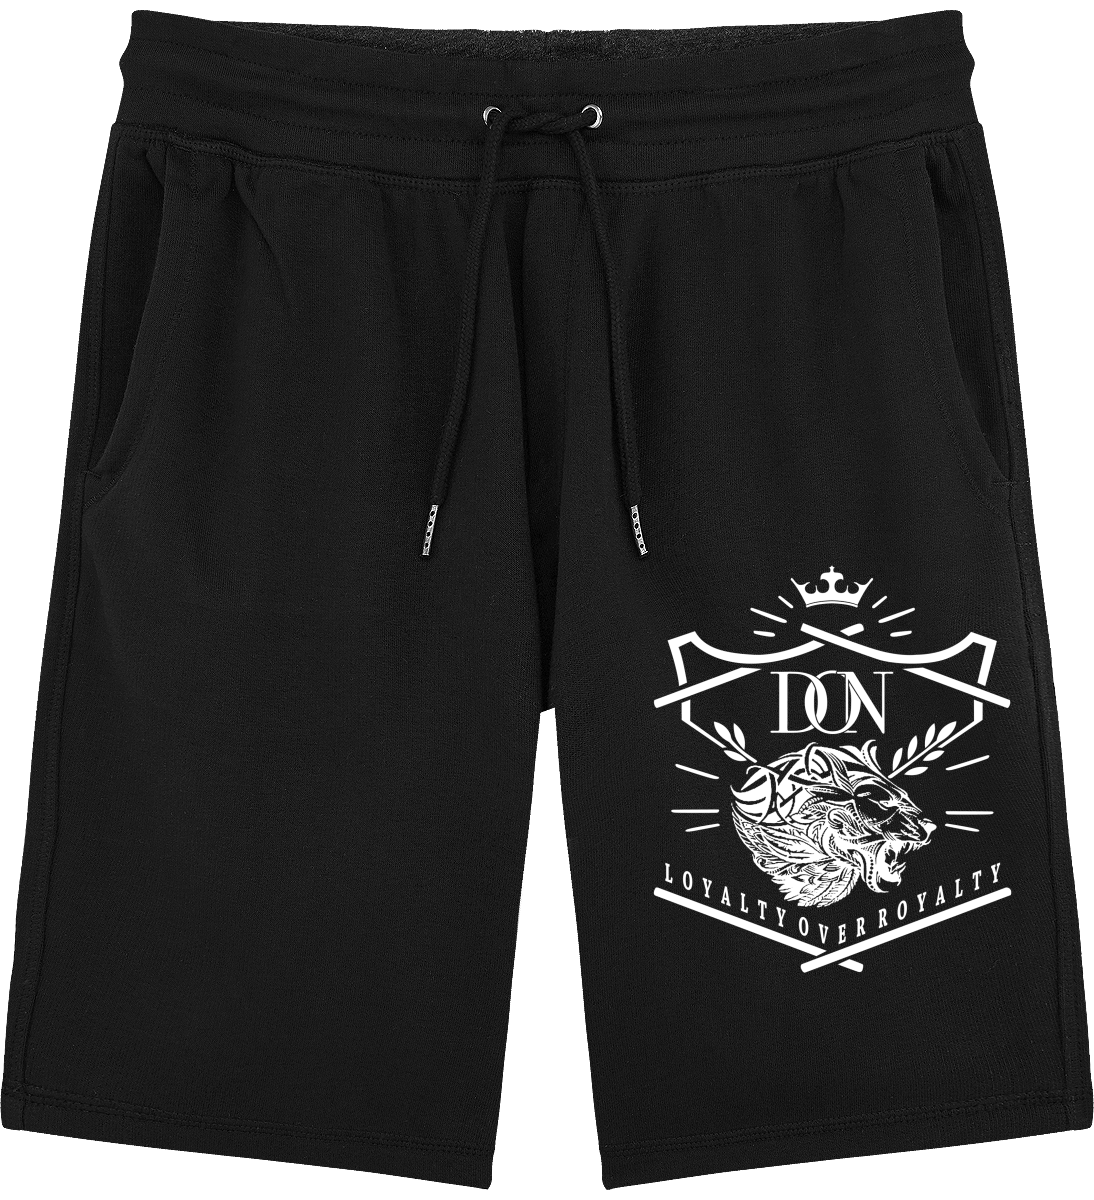 Official Don Loyalty Over Royalty Shorts - Black / S - Homme>Vêtements De Sport